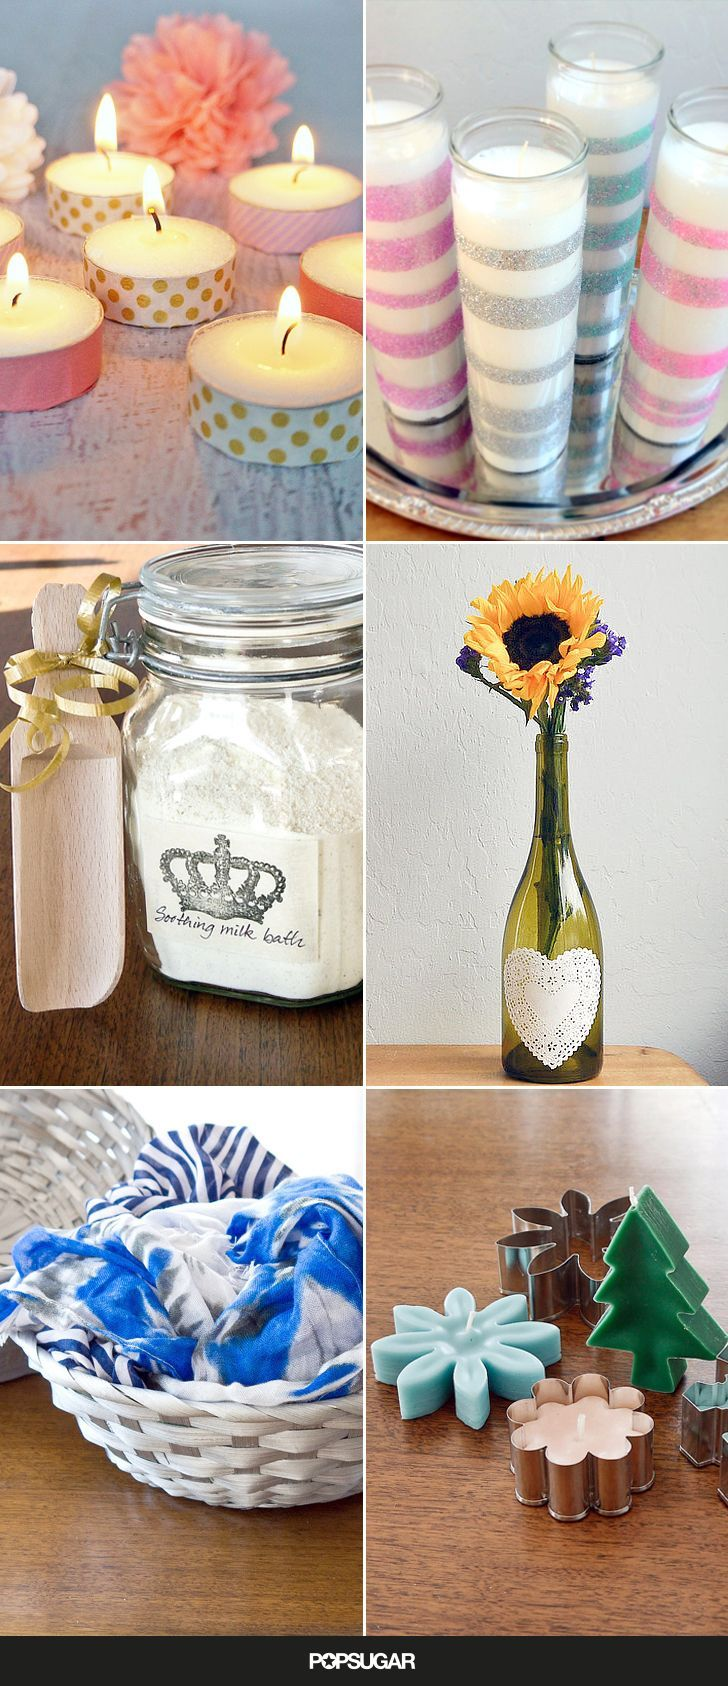 36 Dollar Store Diy Projects To Try Out Diy Projects To